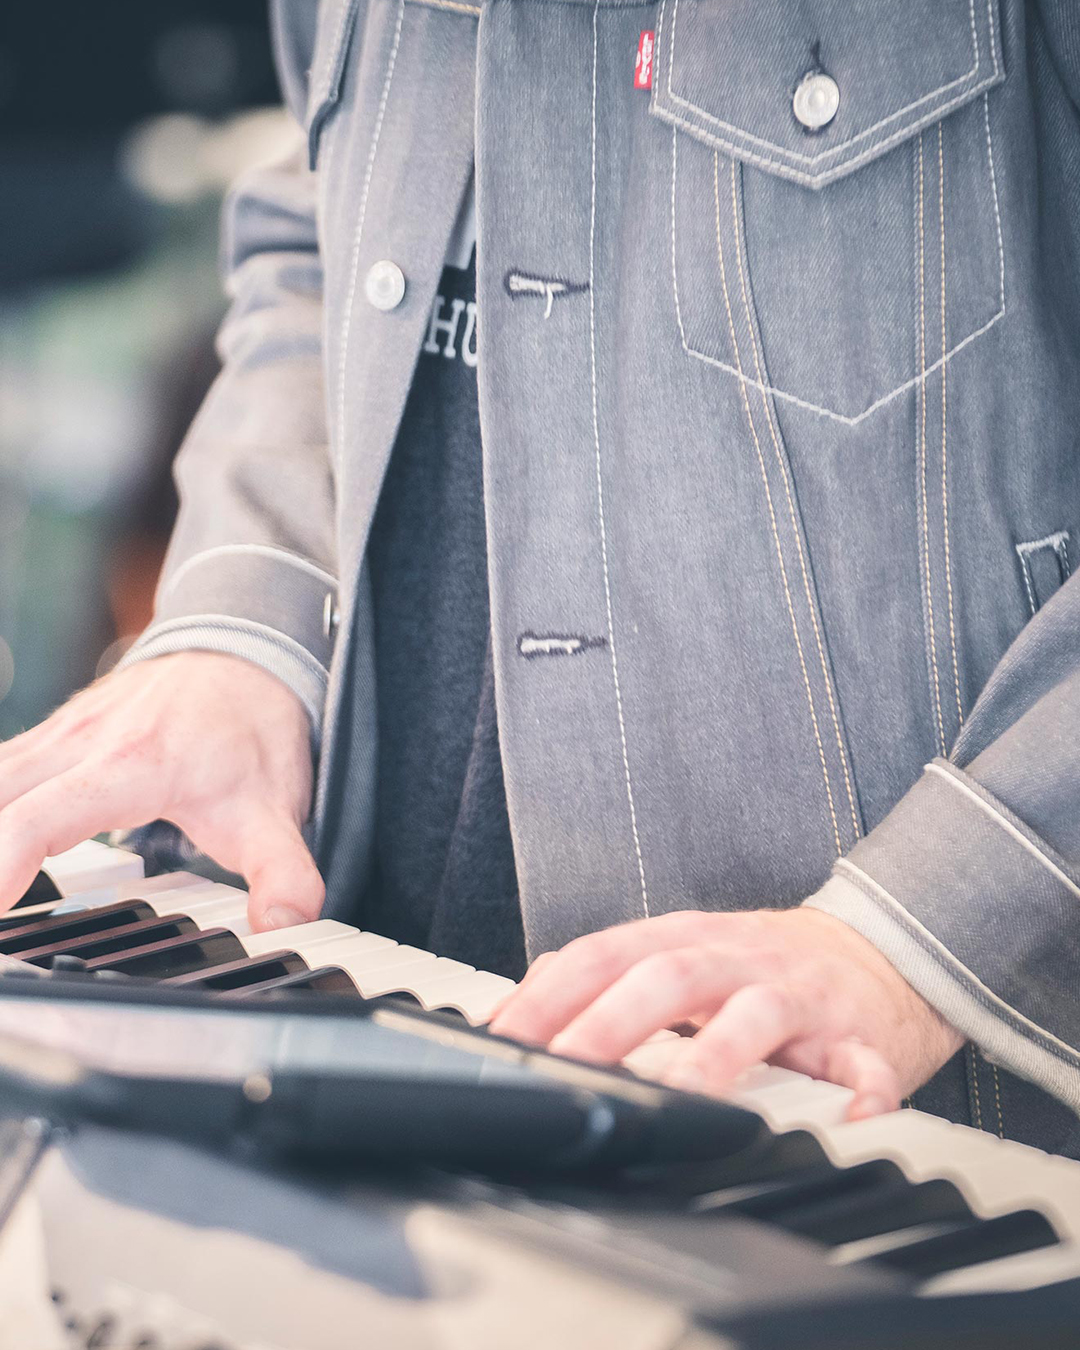 Keyboardist playing during a weekend worship service at Pearce Church in Rochester, NY